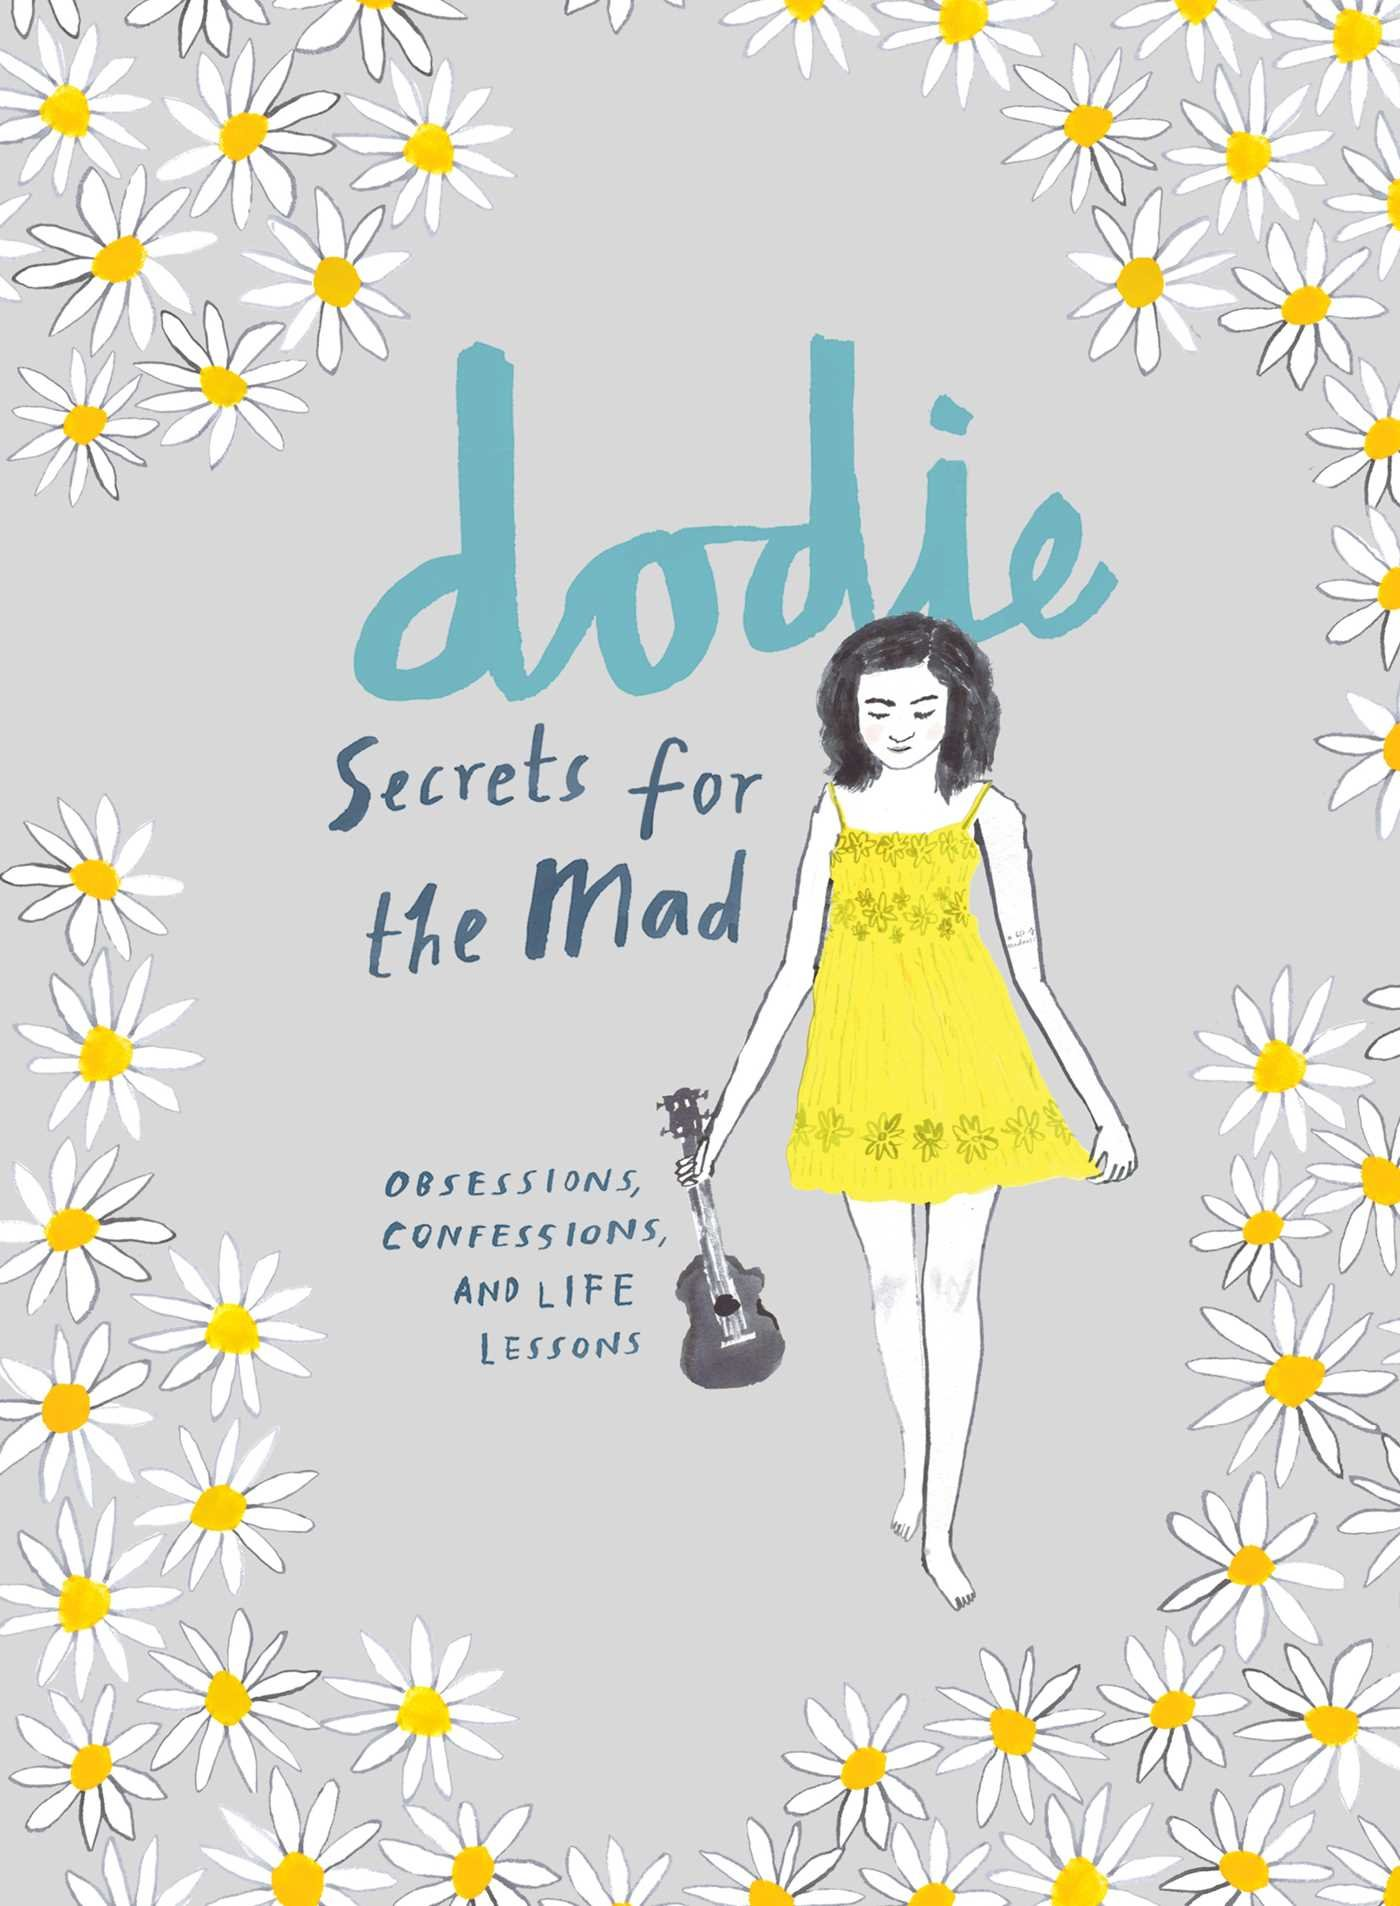 Obsessions, Confessions, And Life Lessons By Dodie Clark.jpg